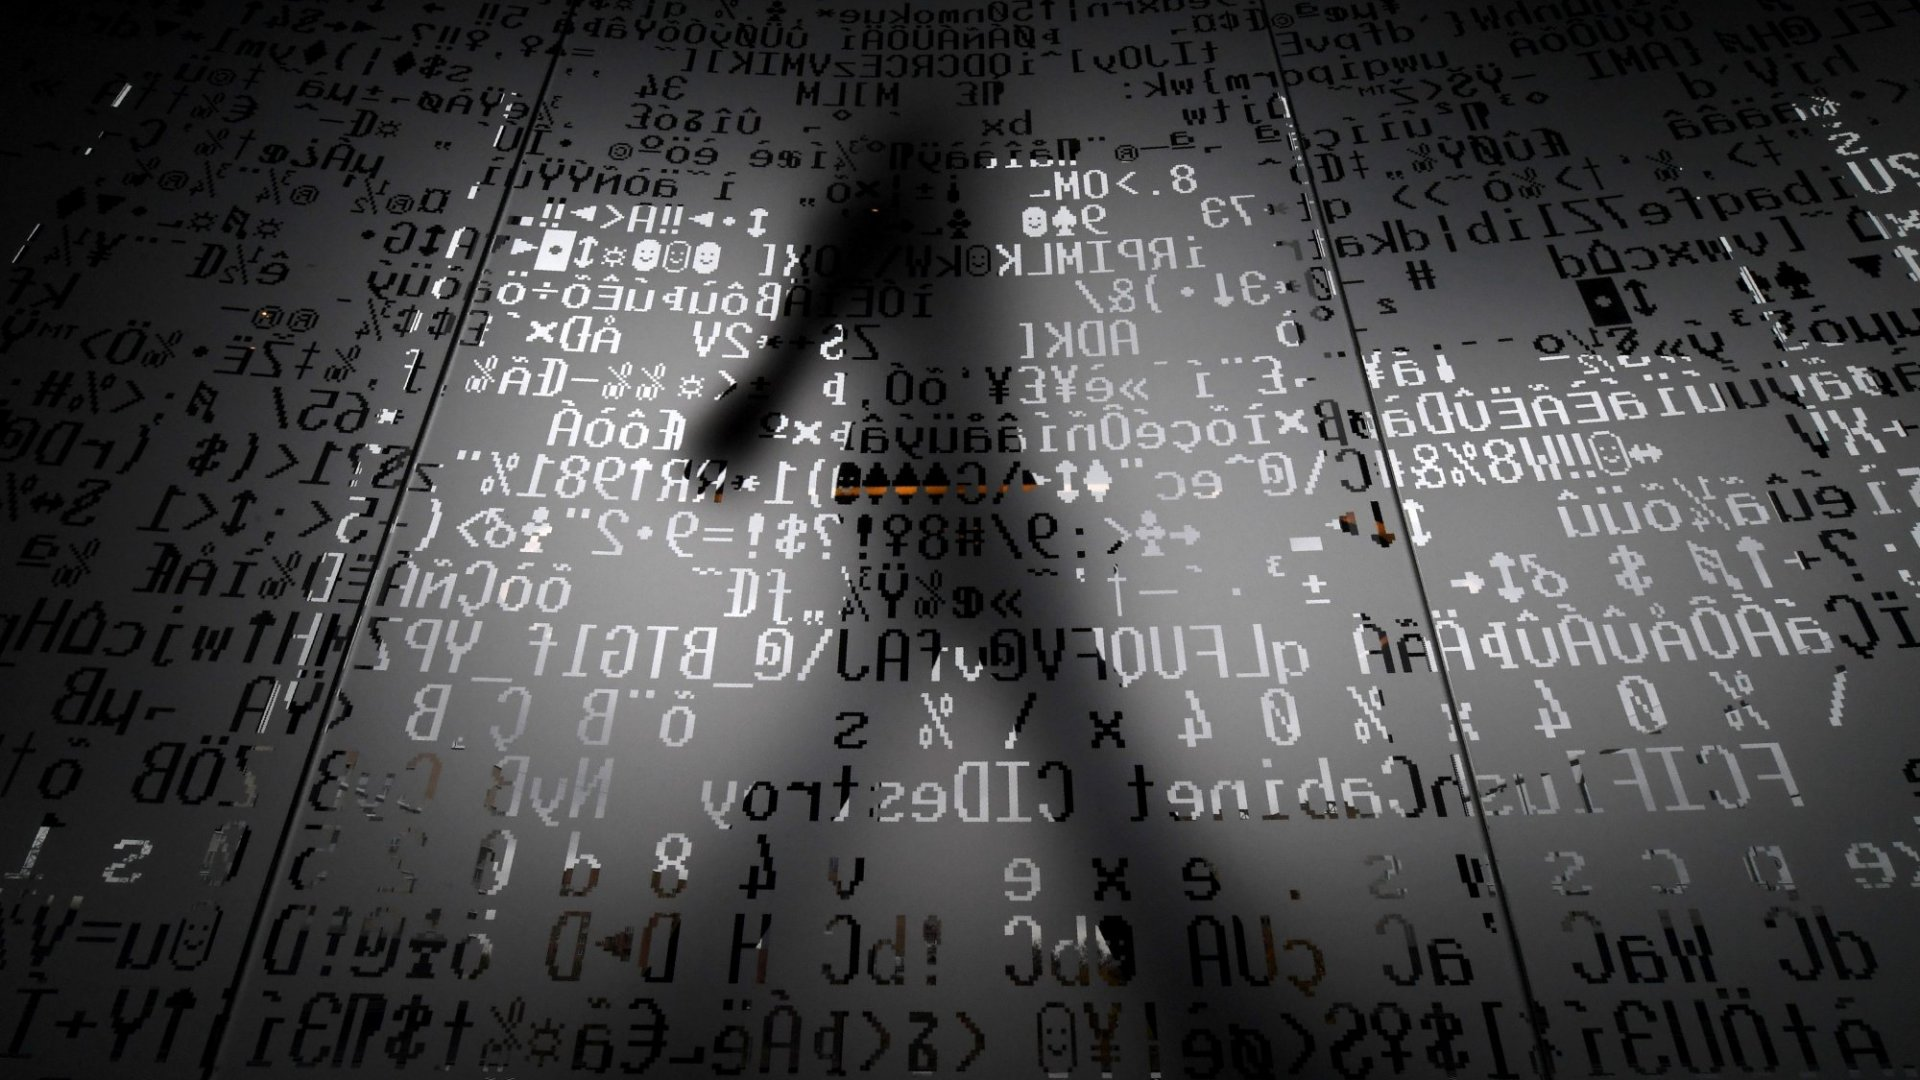 Cyber insurance is in high demand, but what happens when hackers take out a power grid and thousands of businesses with cyber insurance start filing claims? Experts are worried that insurers are not ready to cover thousands of claims after a large-scale hack.